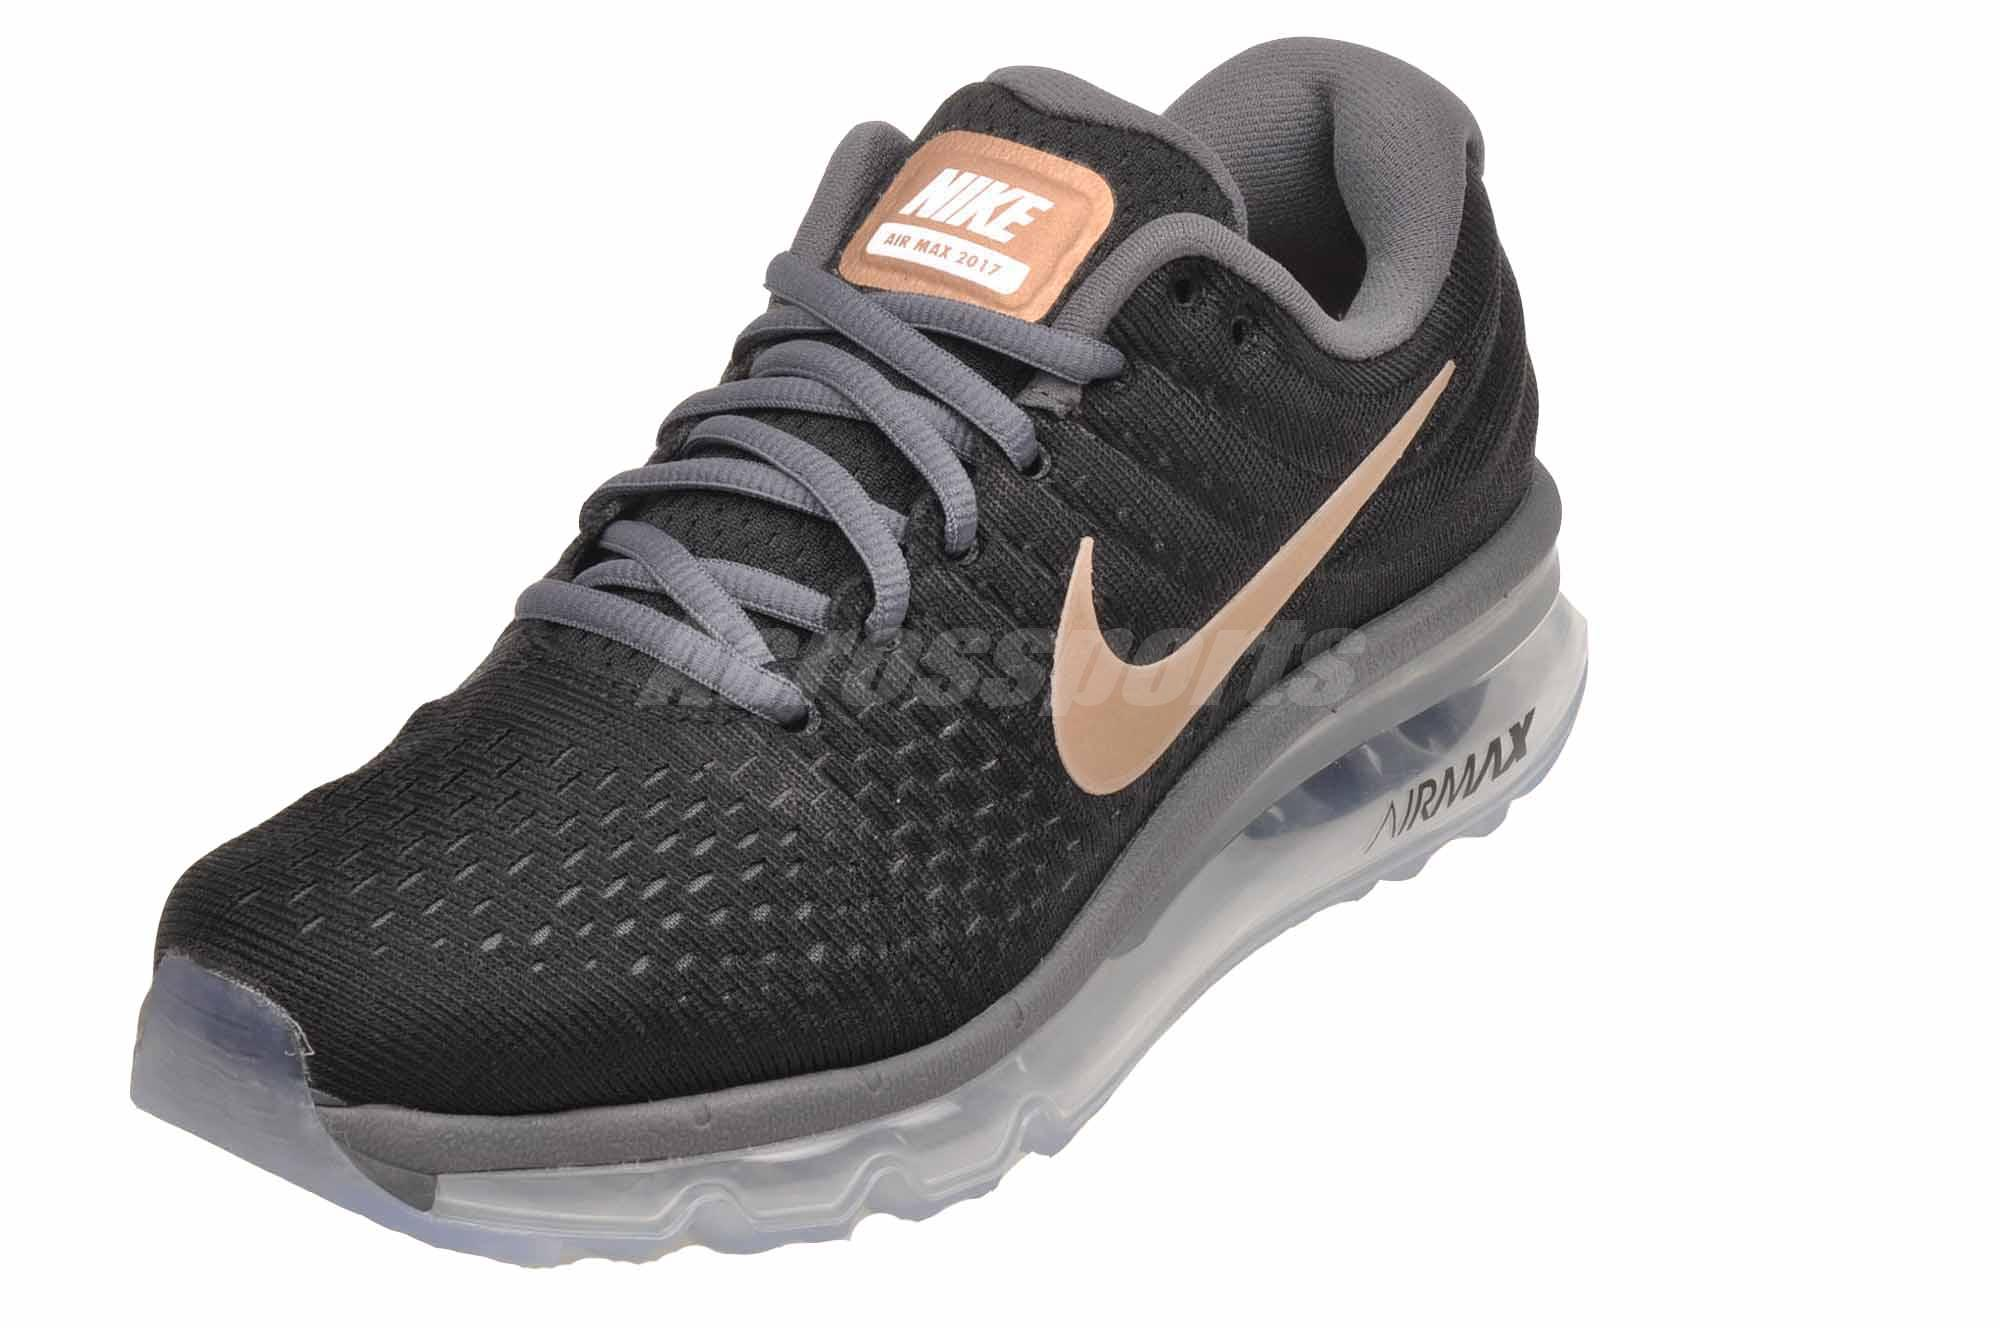 size 40 72d78 8351a Nike Wmns Air Max 2017 Running Womens Shoes Black Bronze NWOB 849560 ...